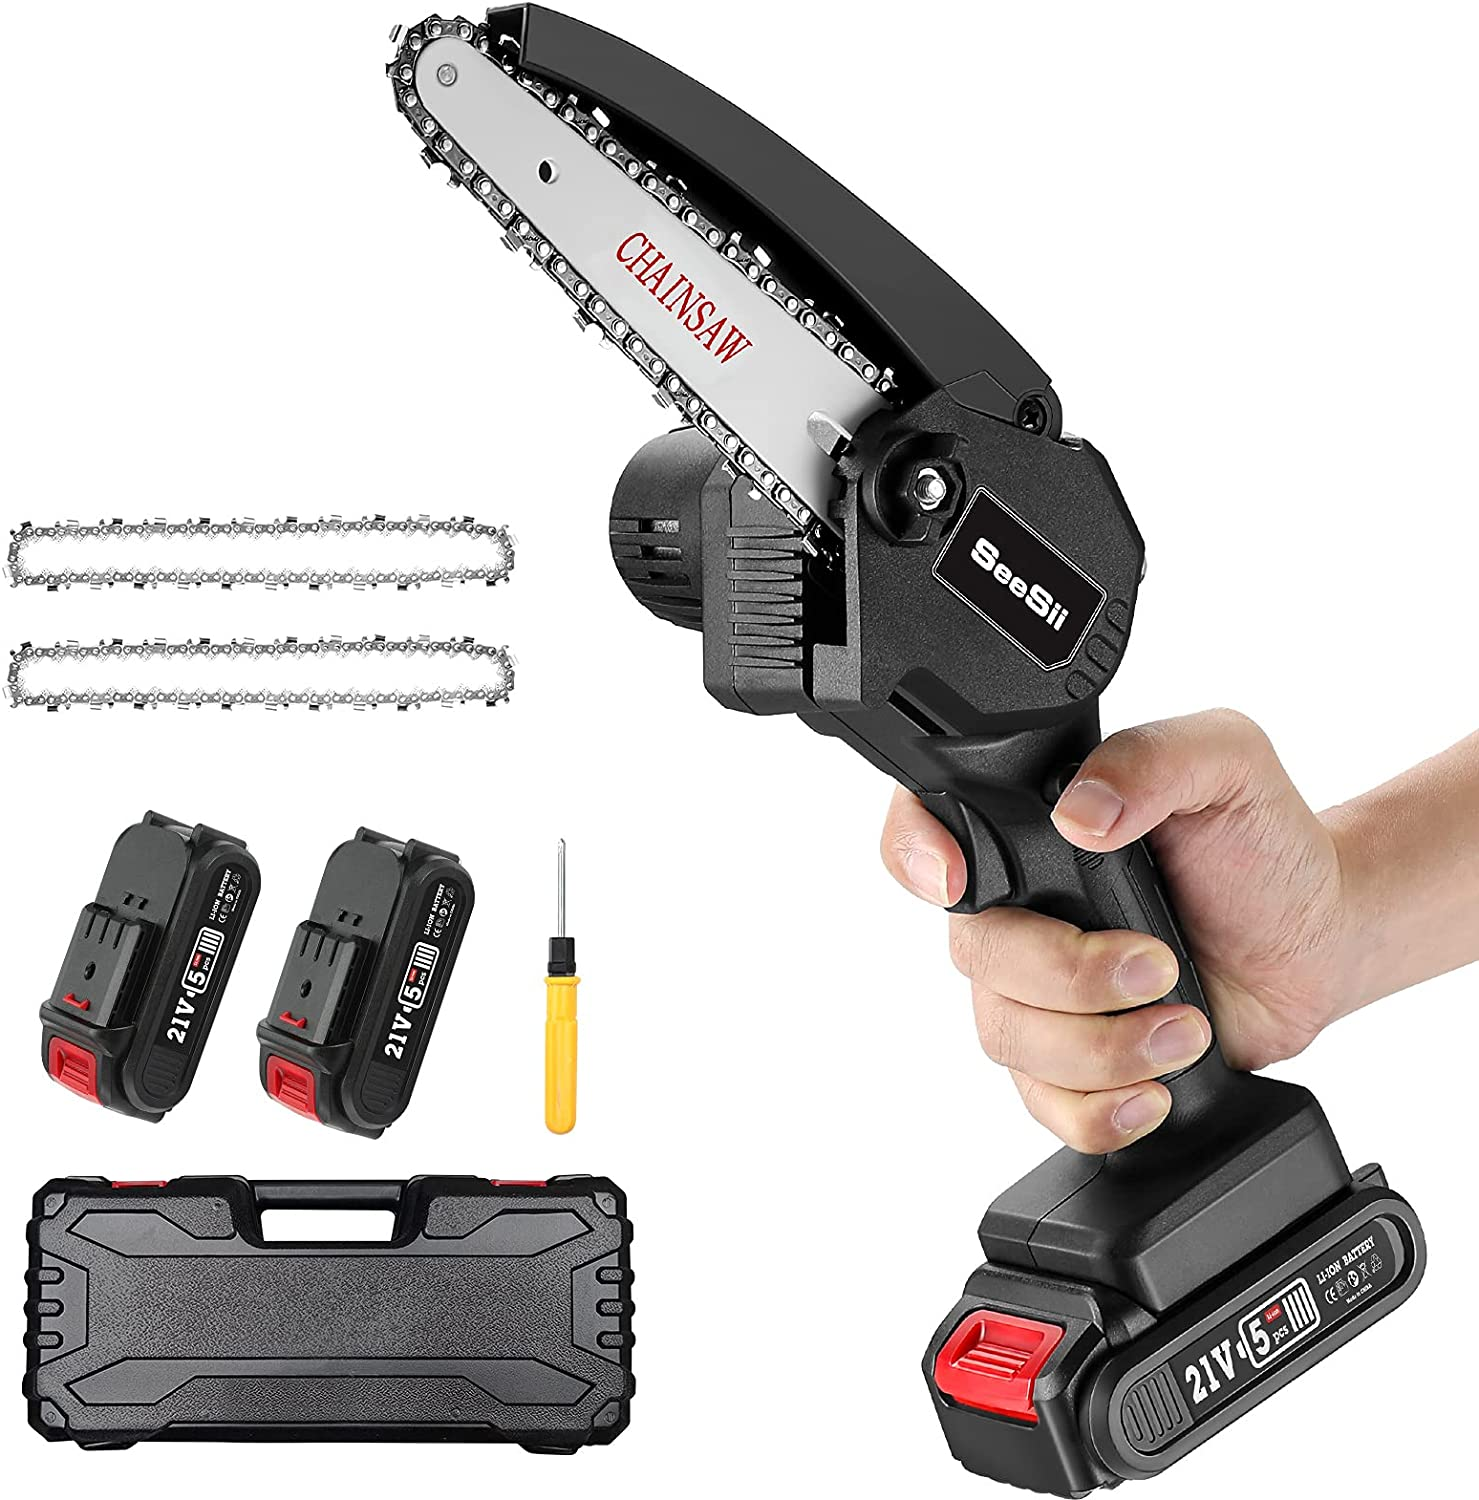 Mini ChainSaw Cordless Seesii 6-inch Chain 2.0 2x shop Online limited product Saw with